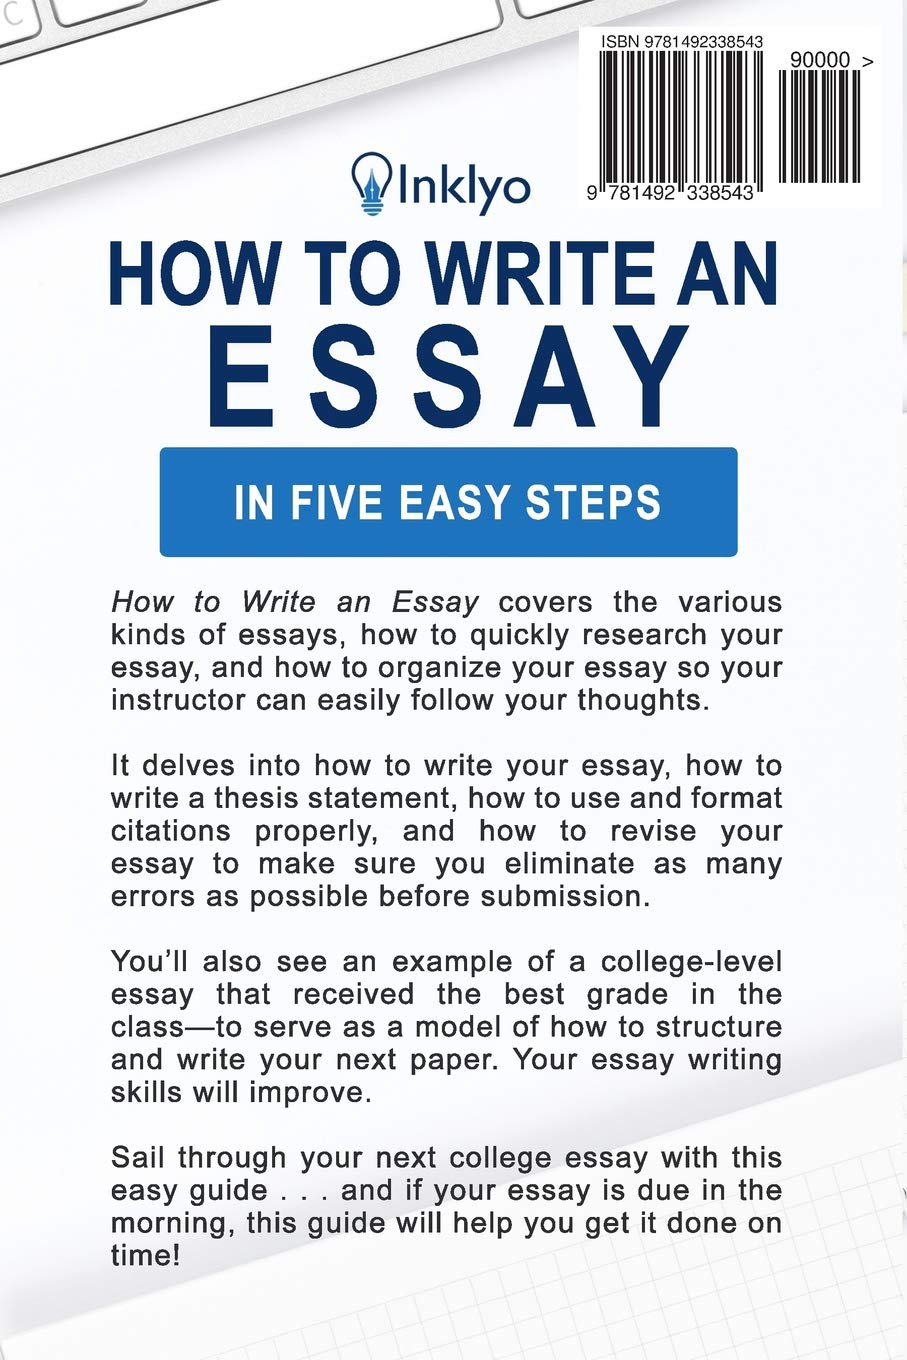 how to write an essay in five easy steps scribendi   how to write an essay in five easy steps scribendi   amazoncom books english 101 essay also write a good thesis statement for an essay proposal essay sample